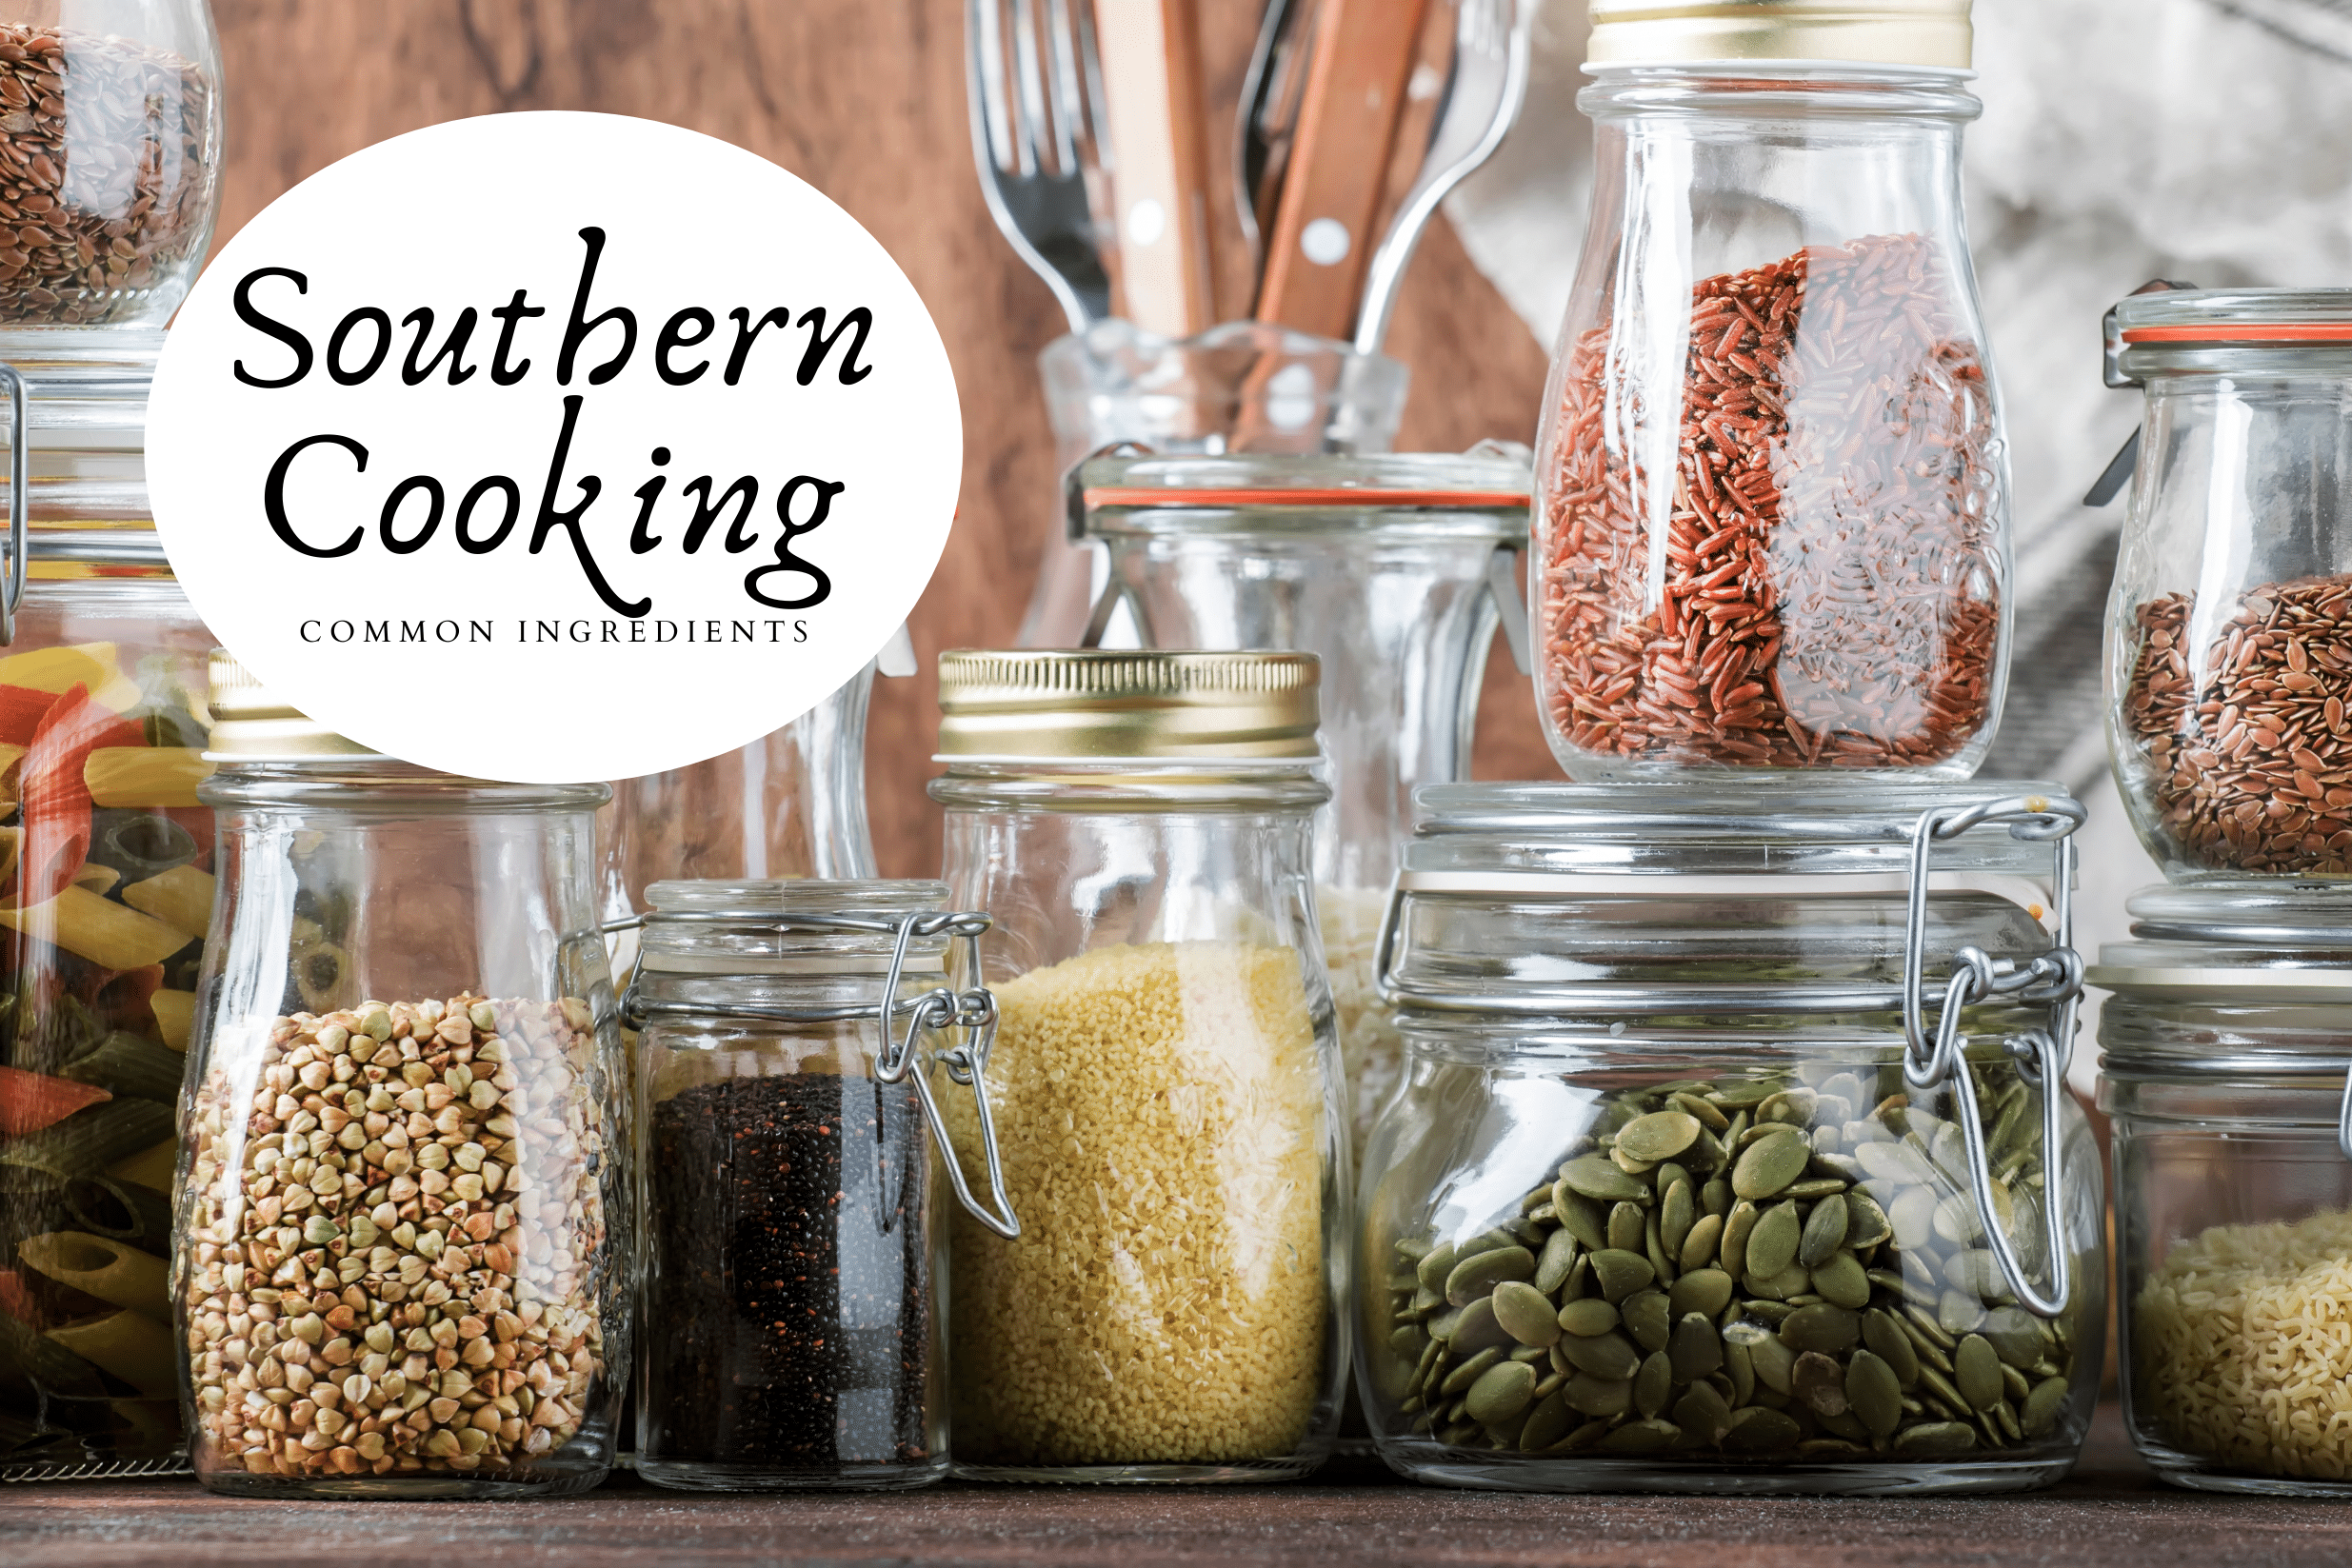 Southern Cooking ingredients